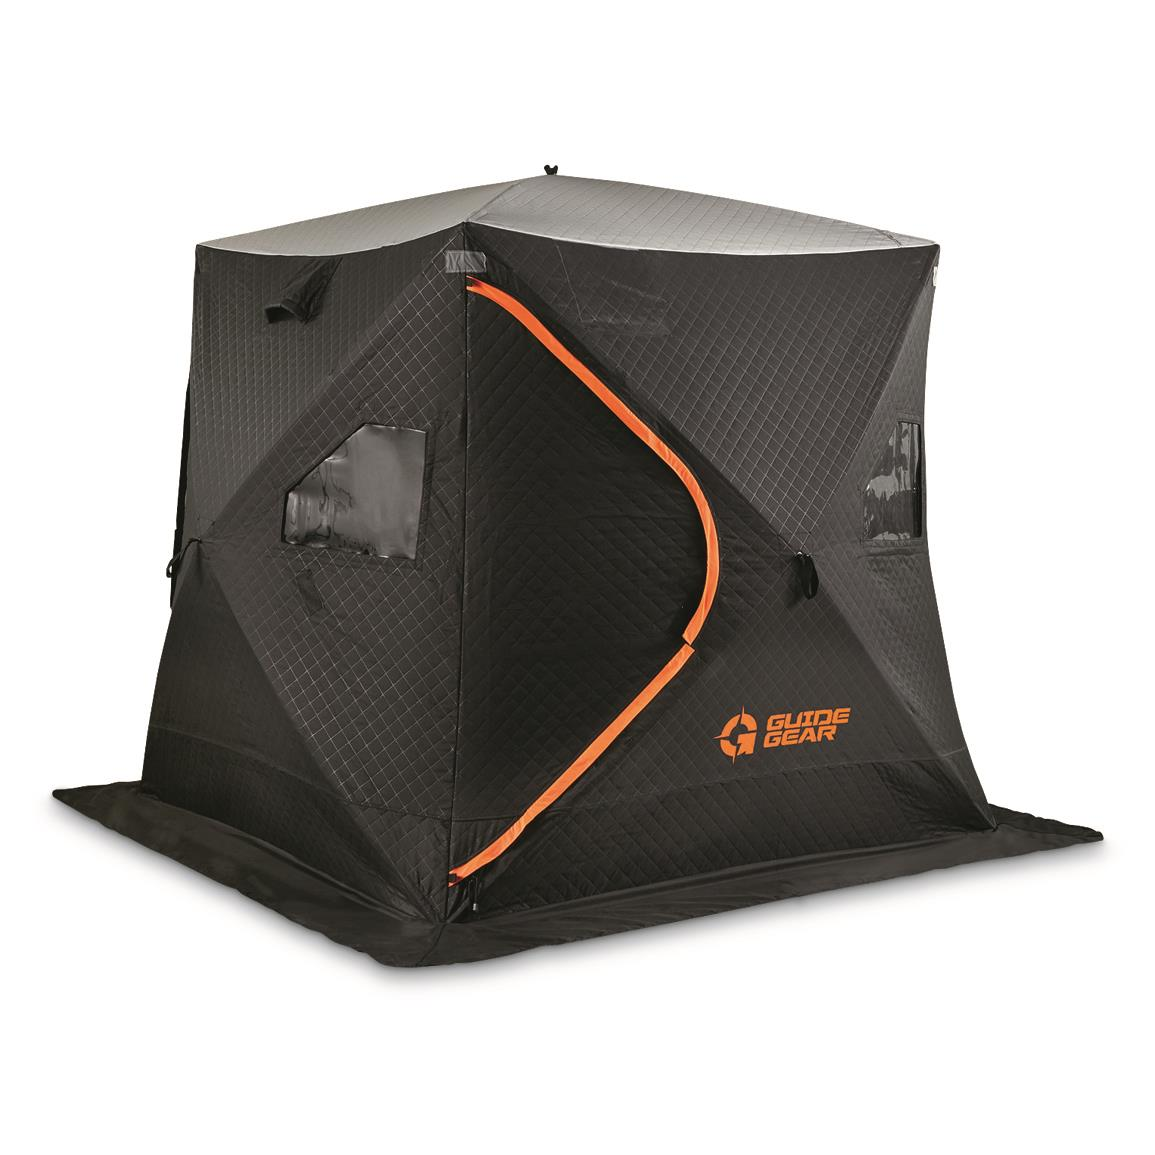 Guide Gear 6' x 6' Fully Insulated Ice Fishing Shelter